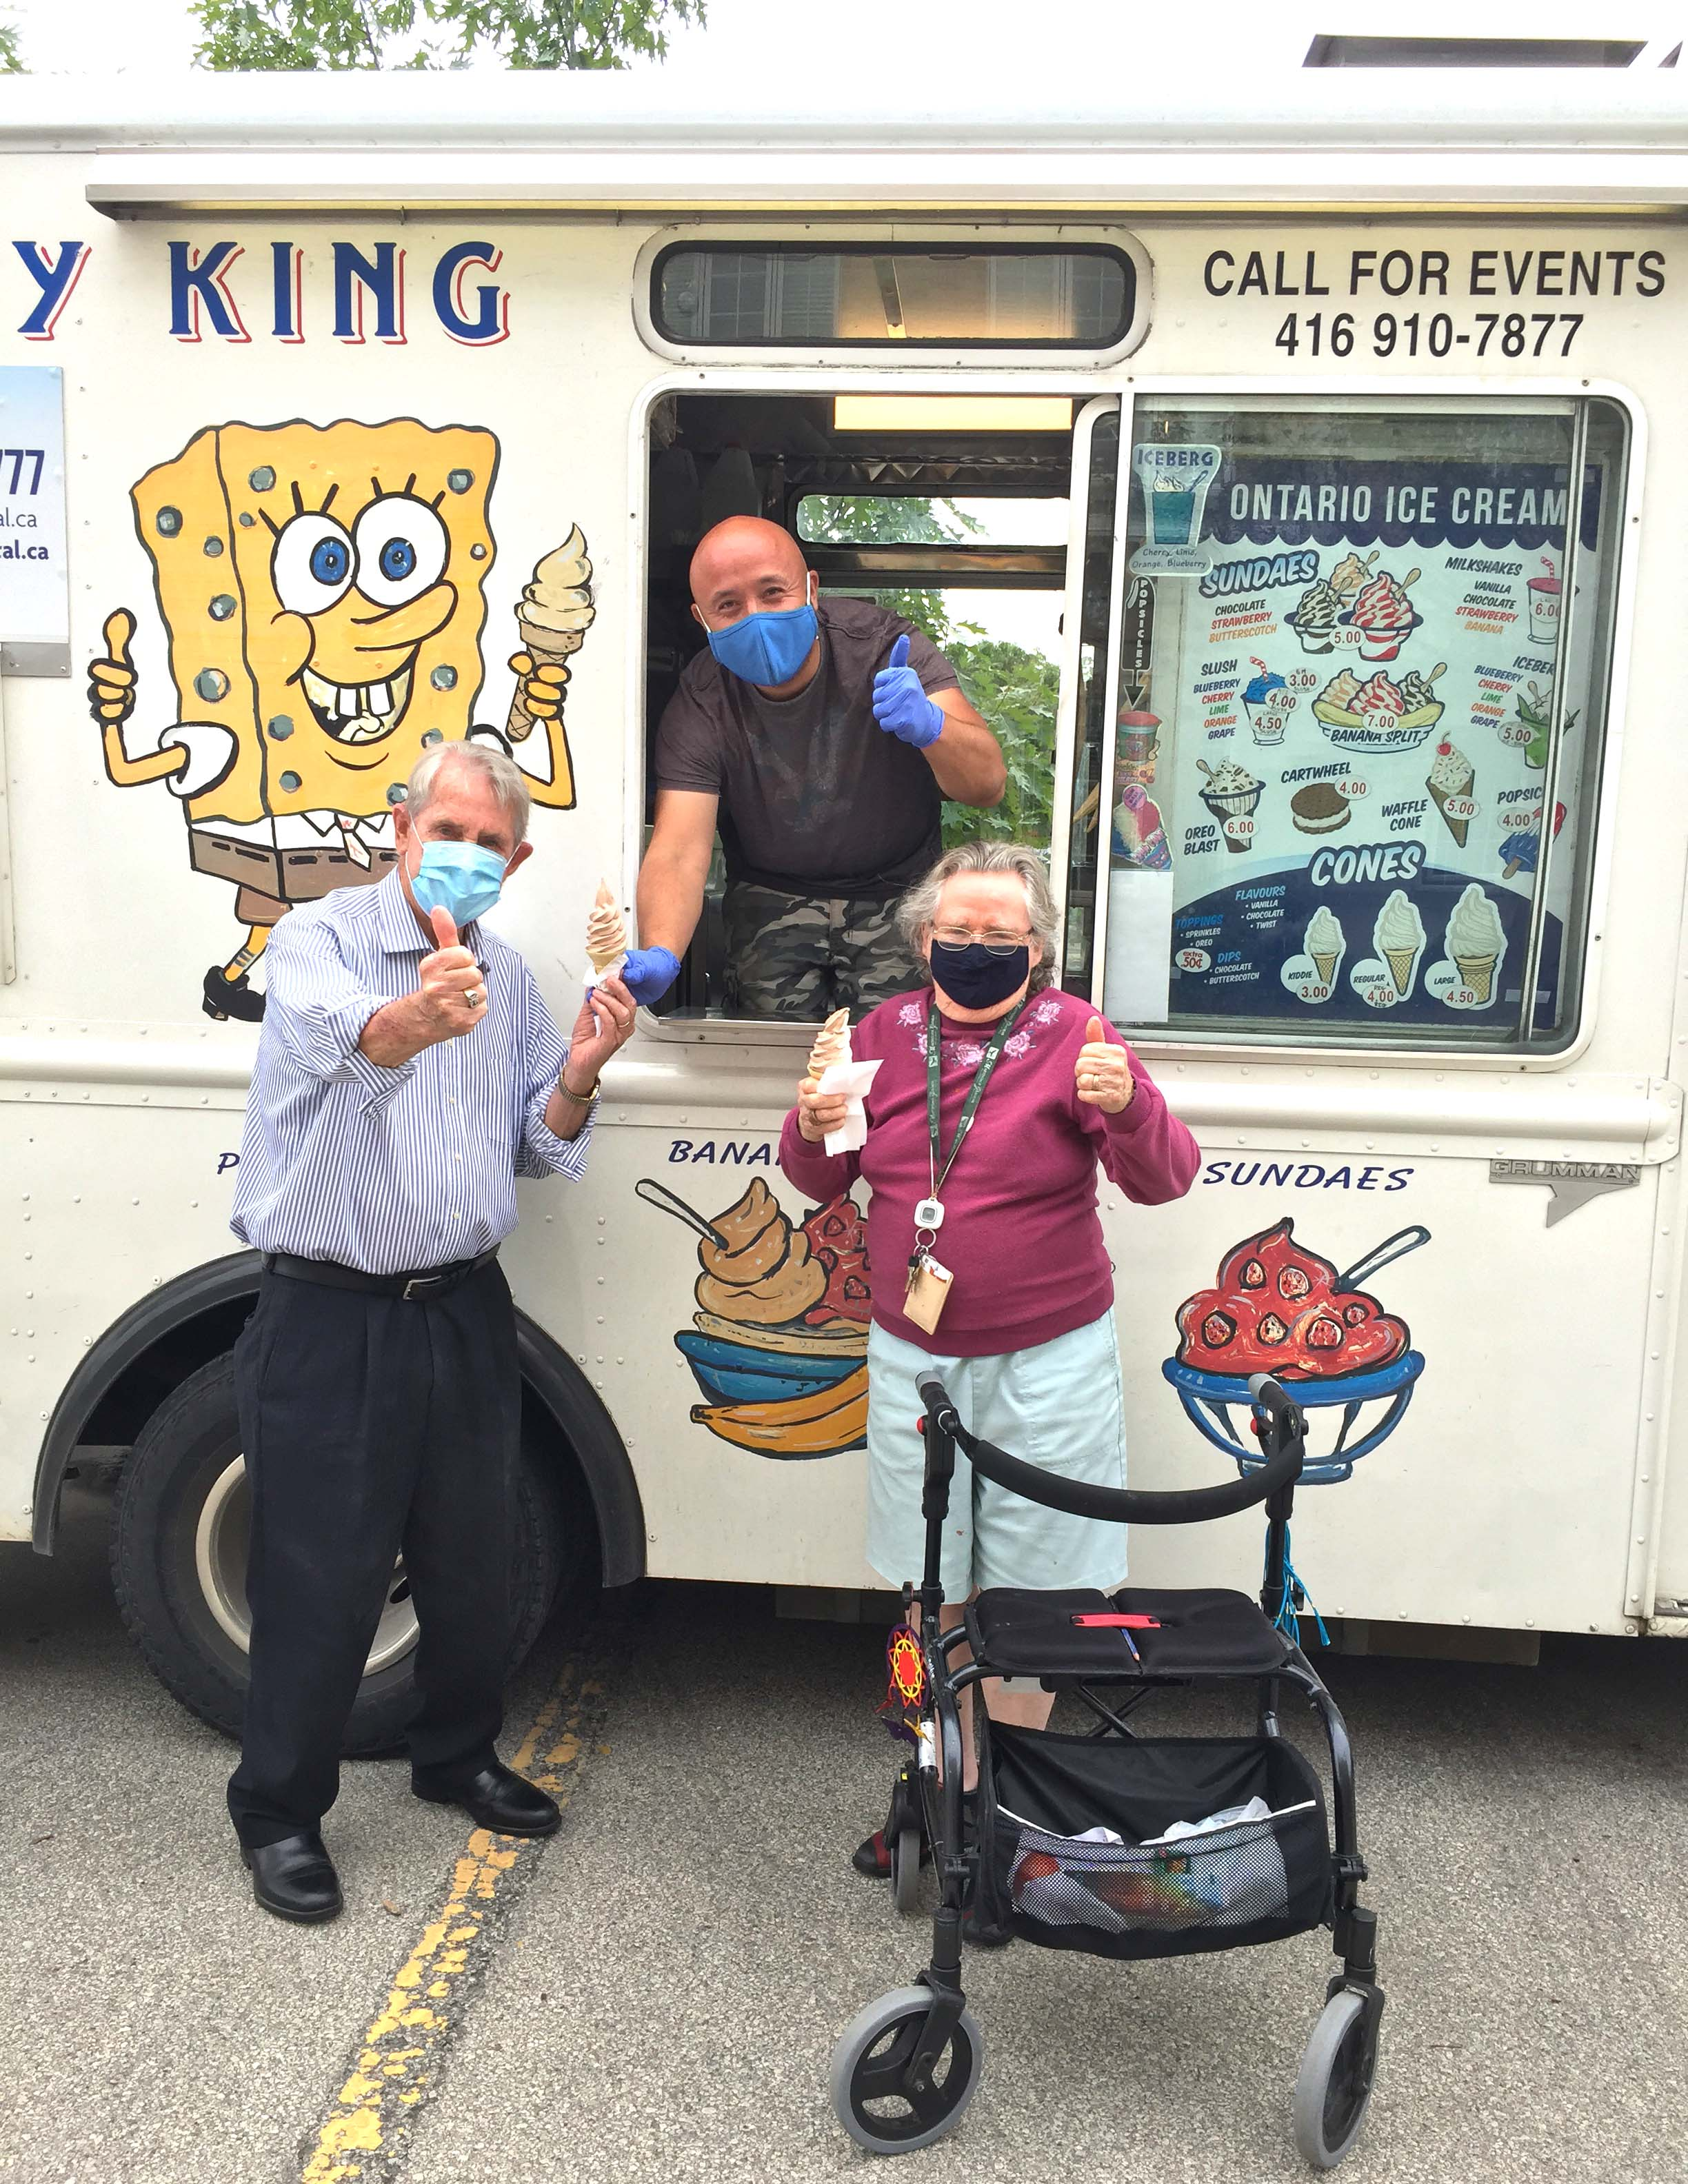 A lady and gentleman receiving ice cream cones from a male employee in an ice cream truck.